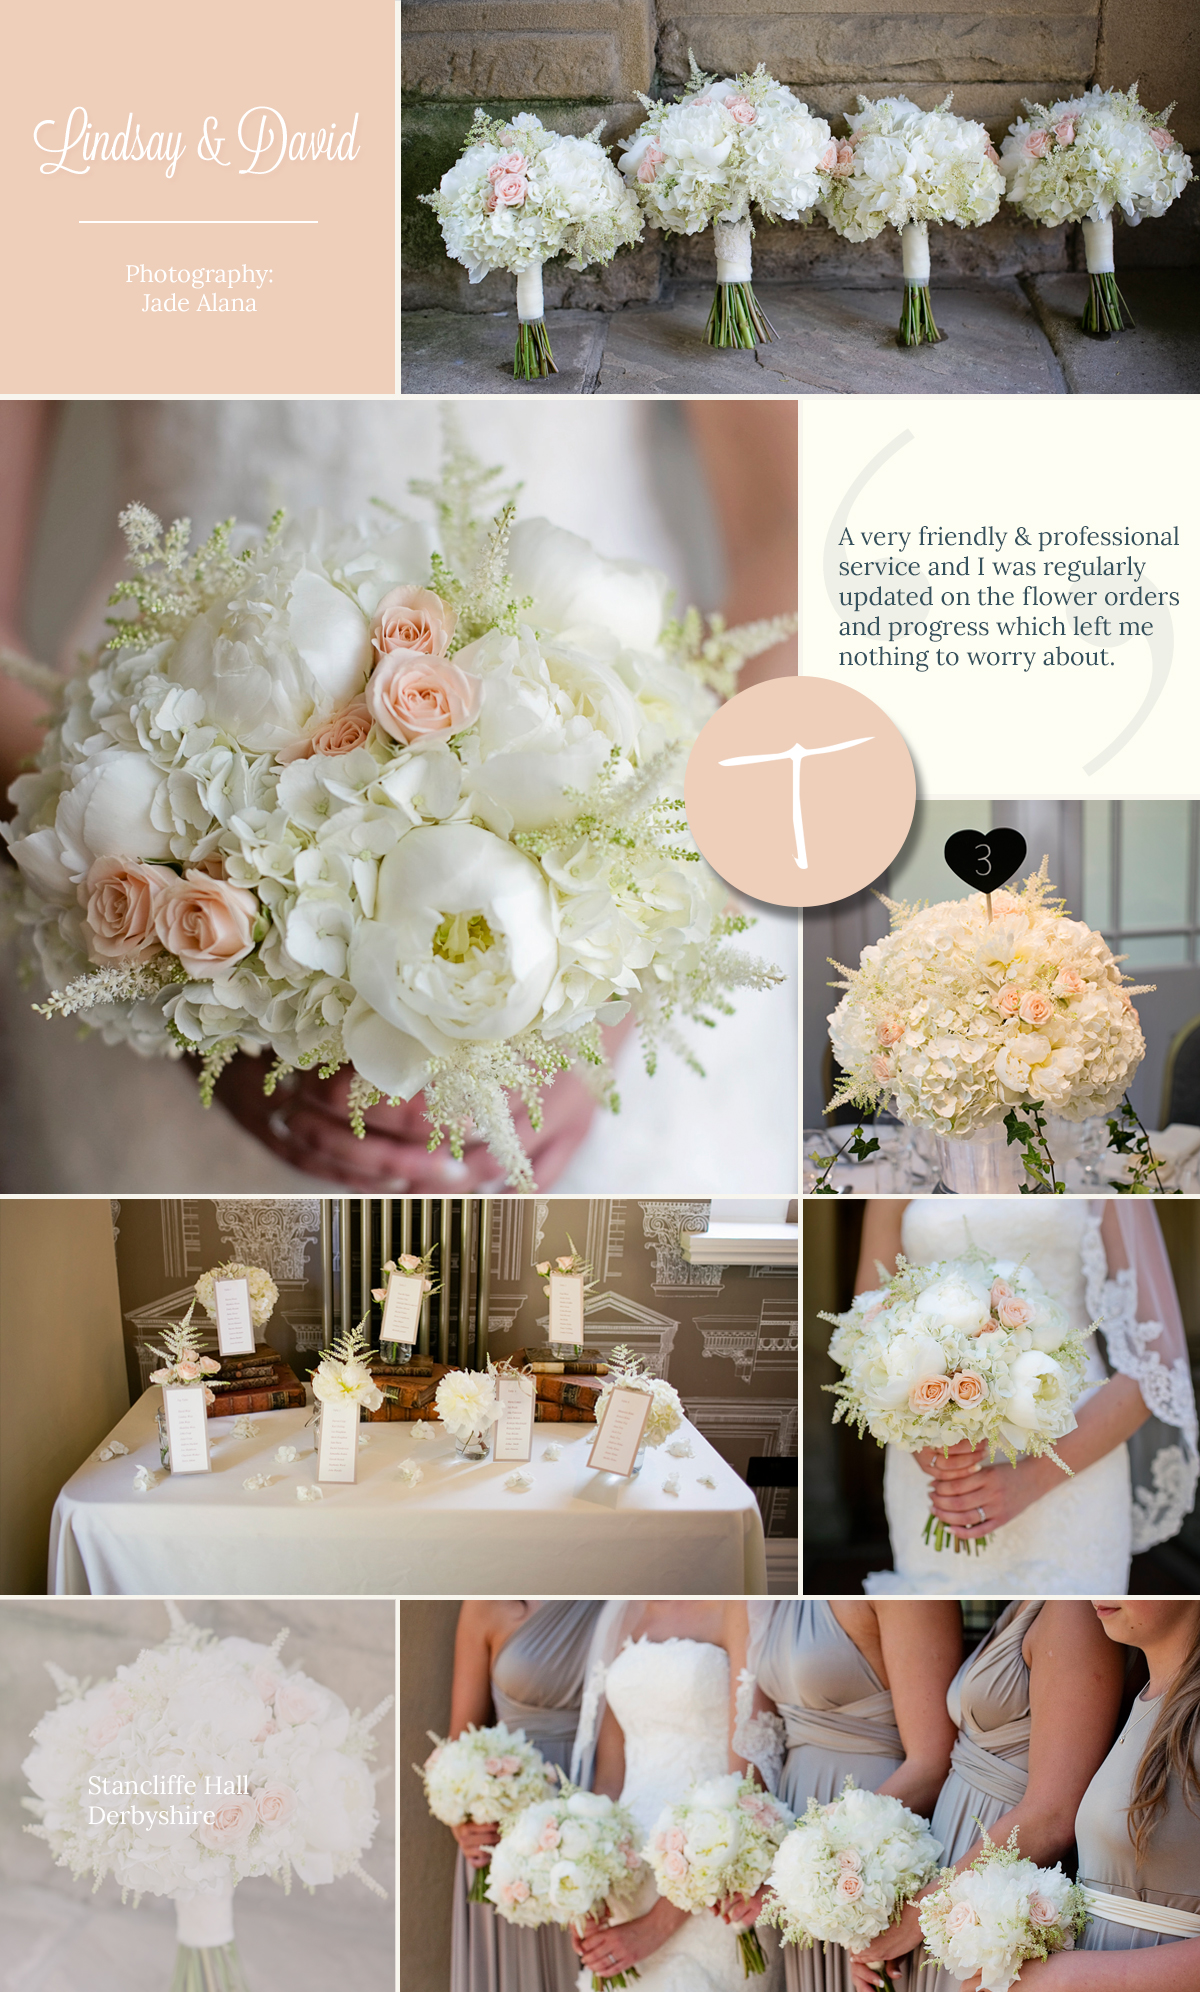 Stancliffe Hall Wedding with soft peach wedding flowers and bridal bouquet from Tineke floral design in Derbyshire